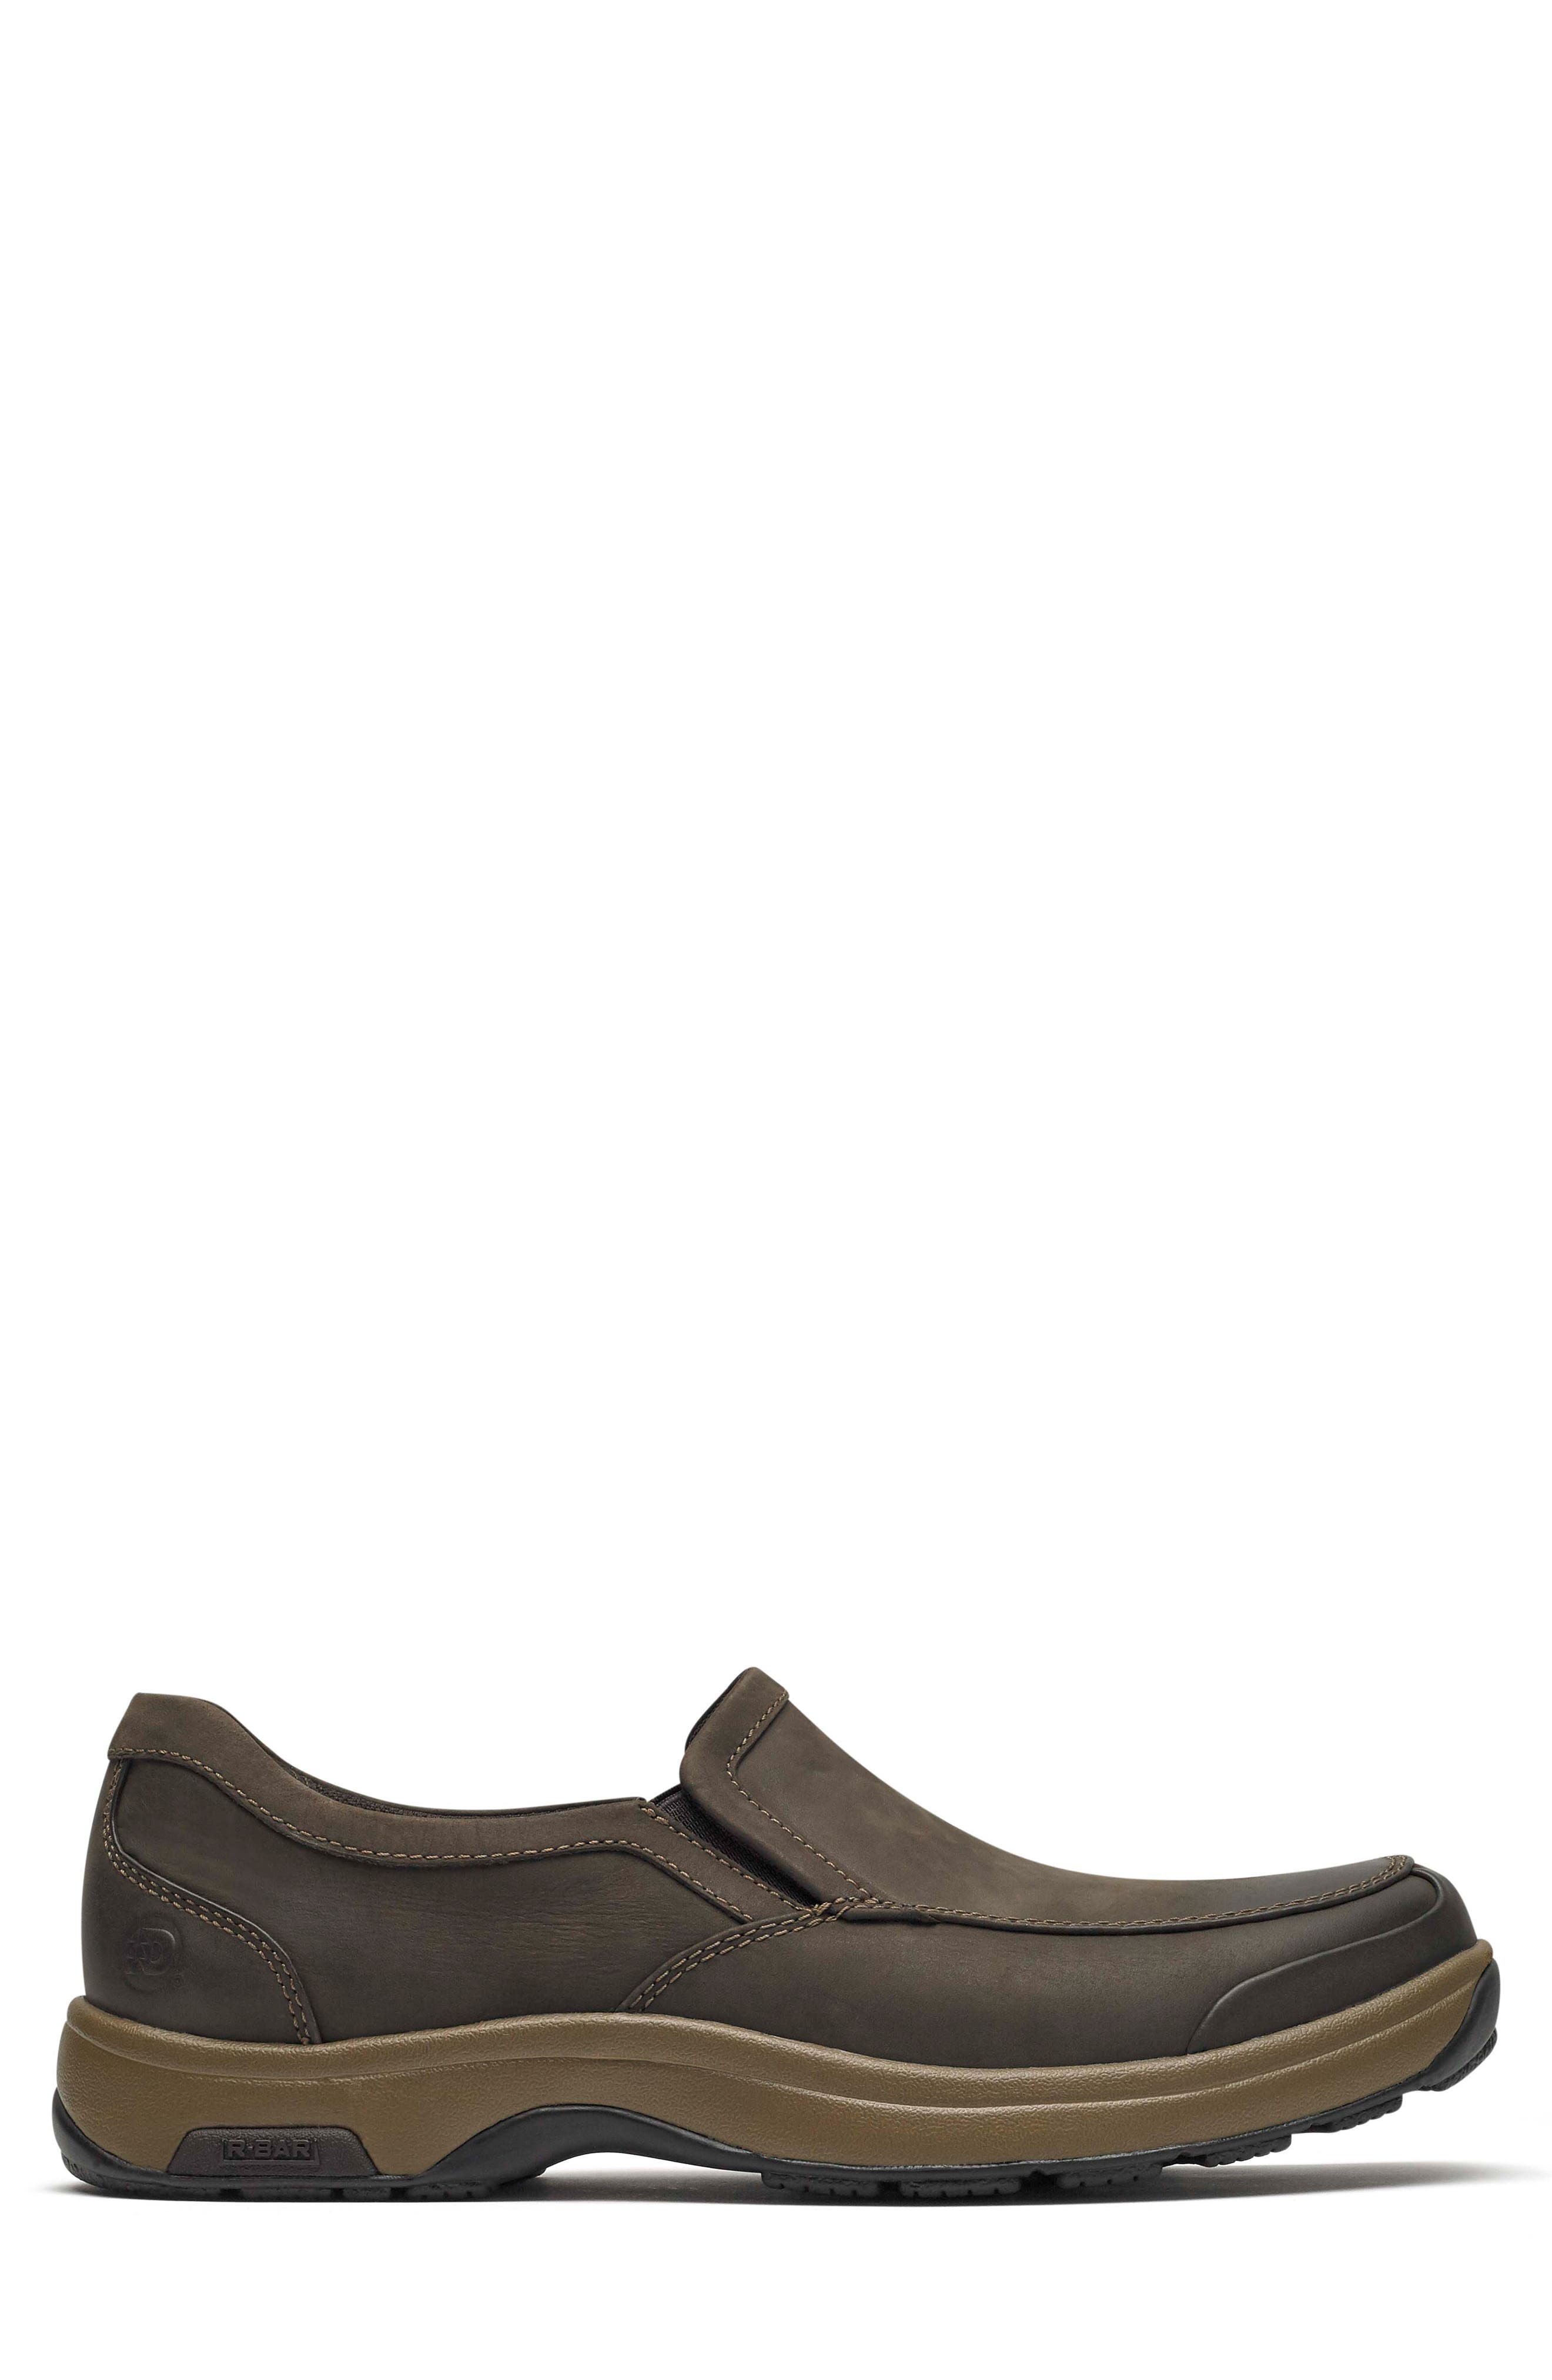 Battery Park Waterproof Slip-On,                             Alternate thumbnail 3, color,                             BROWN LEATHER